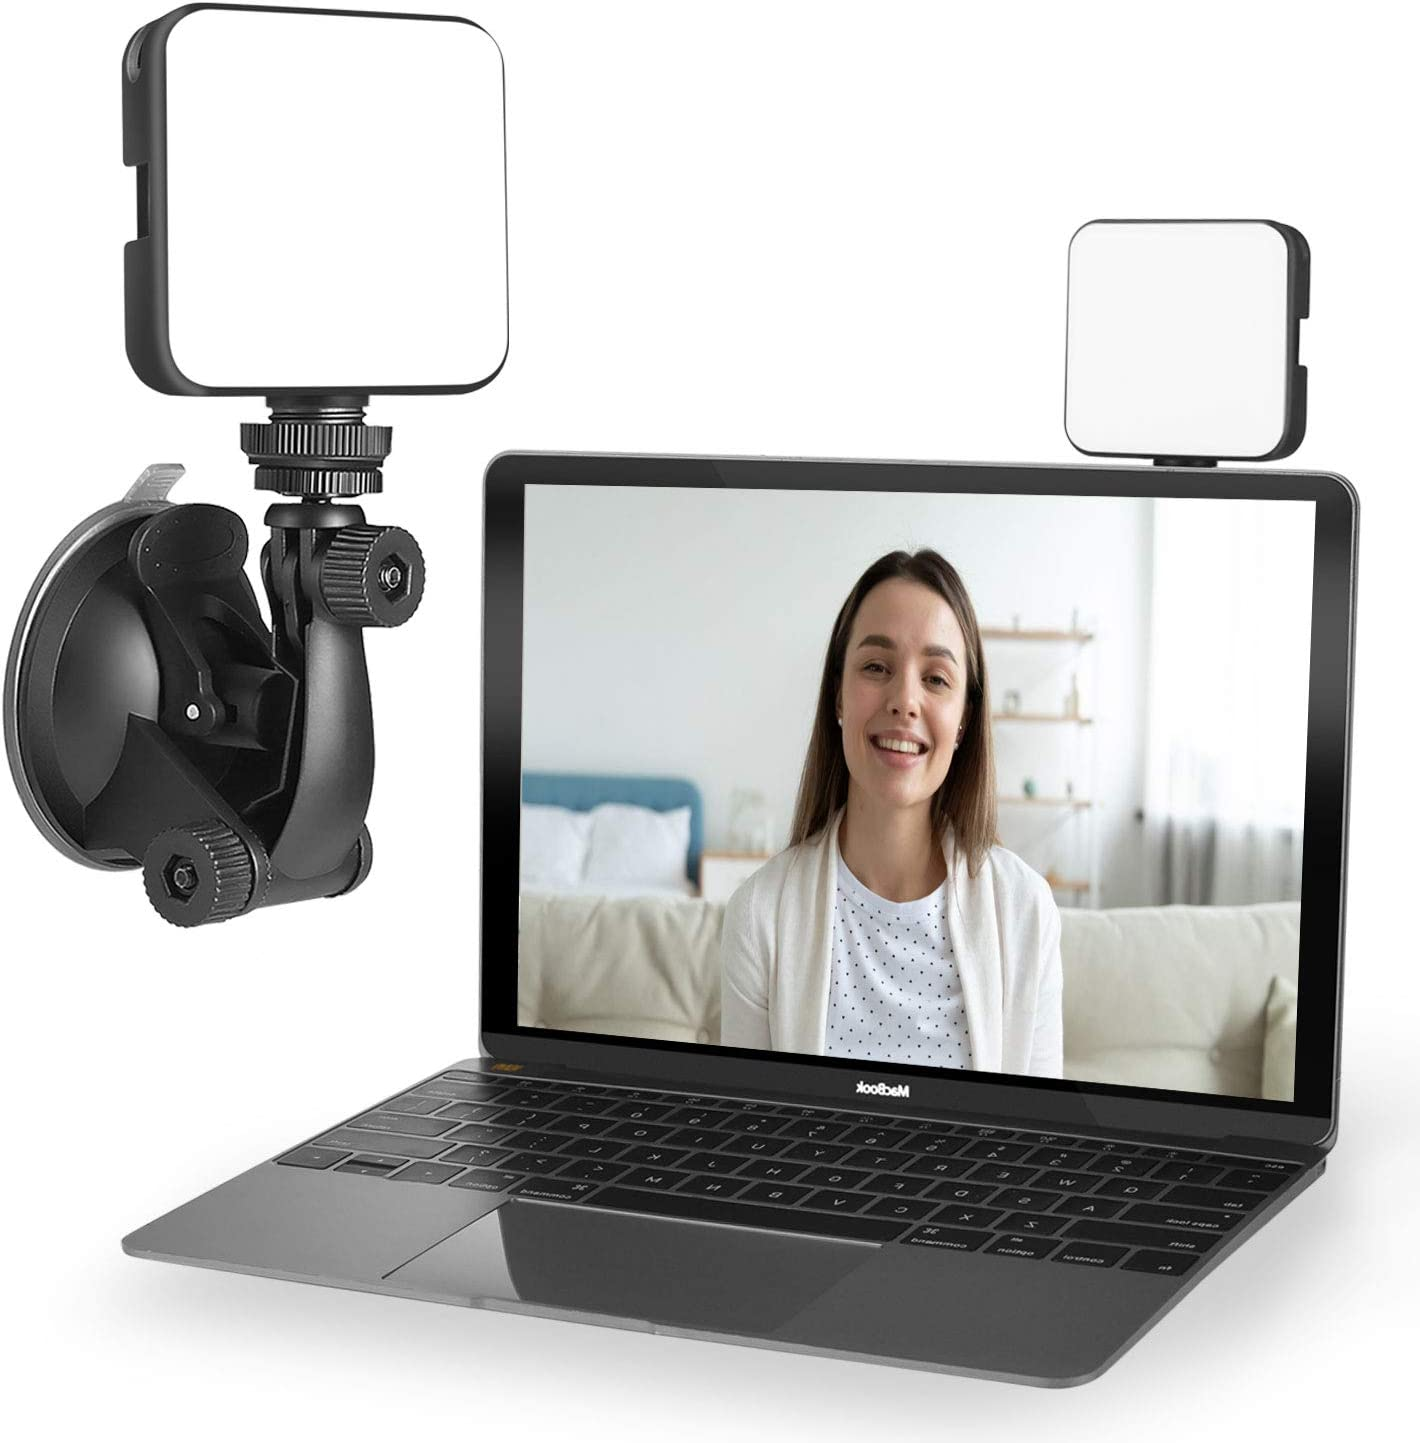 Light for Video Conferencing | Video Conference Lighting Kit | Cube Laptop Computer Webcam Light for Video Conferencing - Self Broadcast - Zoom Call Meeting - Microsoft Teams - Live Streaming